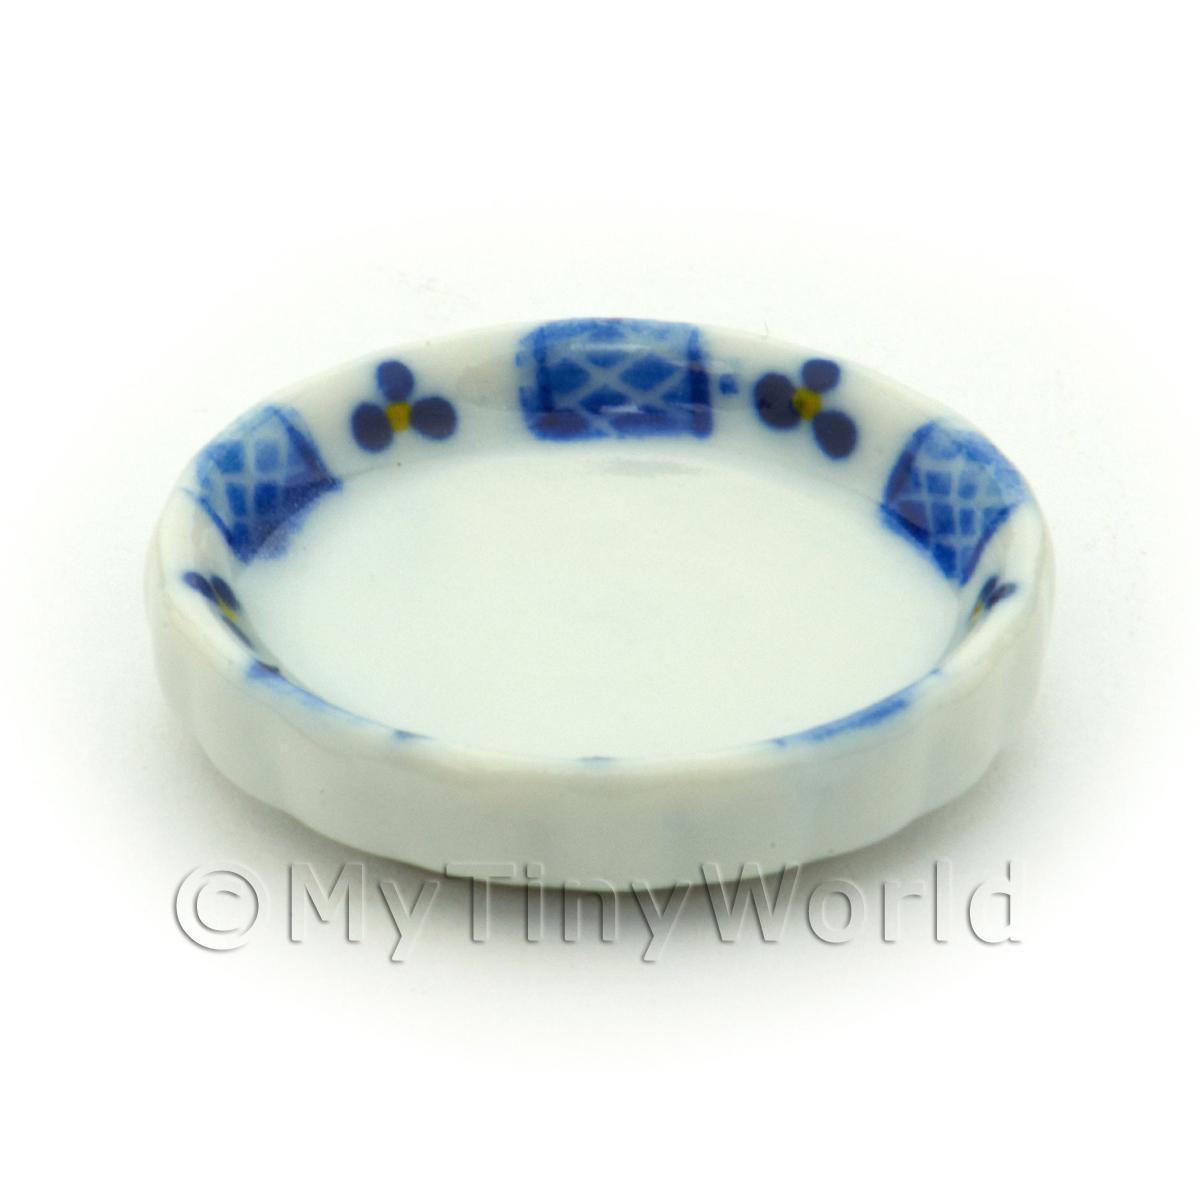 Dolls House Miniature Blue Lace Design Ceramic Flan Dish